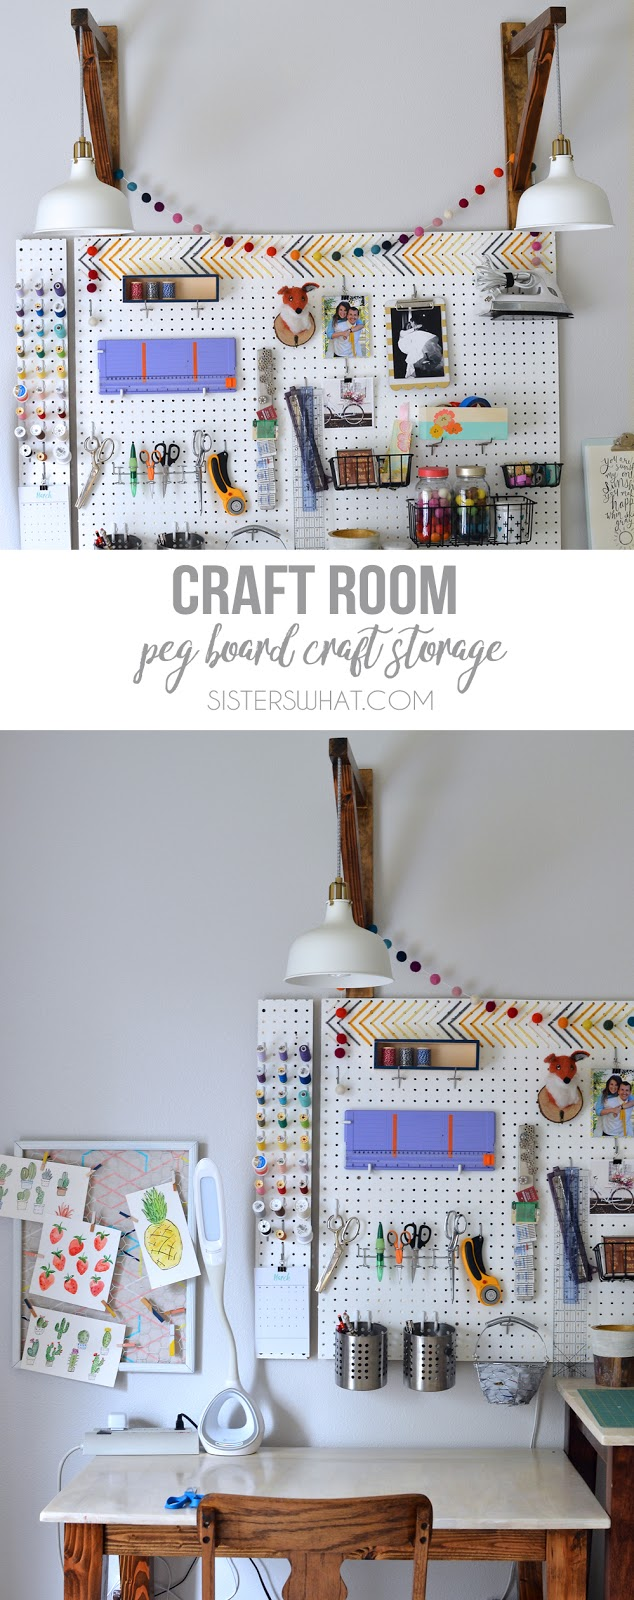 Organizing craft supplies and sewing supplies on a pegboard in a colorful and organized way in craft room